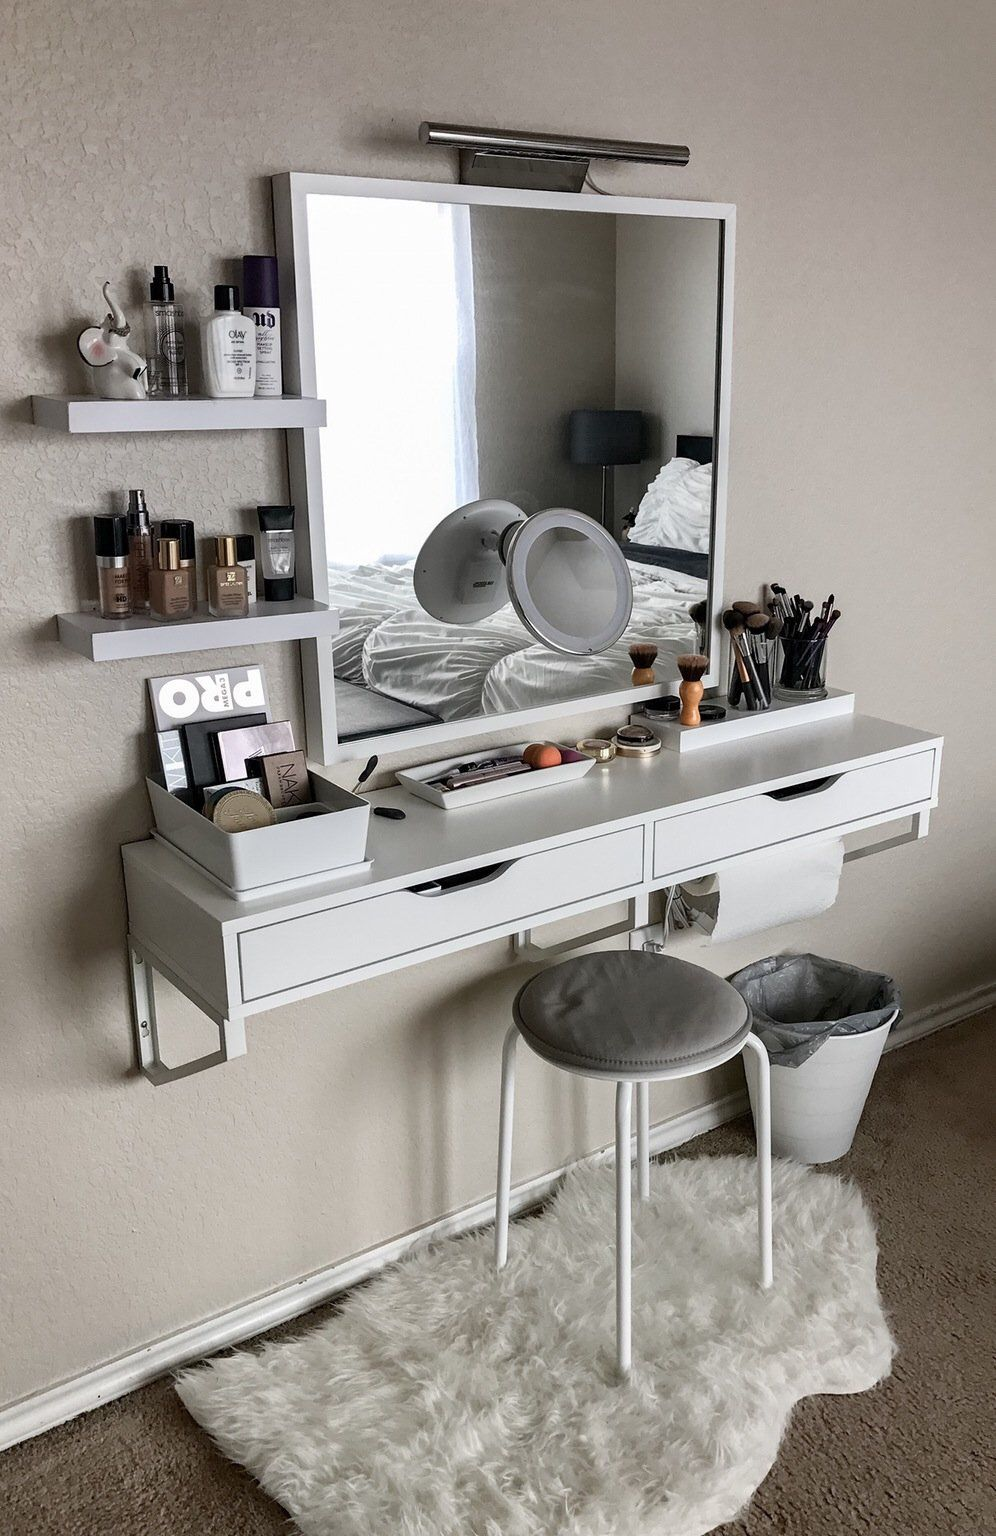 Beautiful battle station | House loves | Pinterest - Inspiratie ...